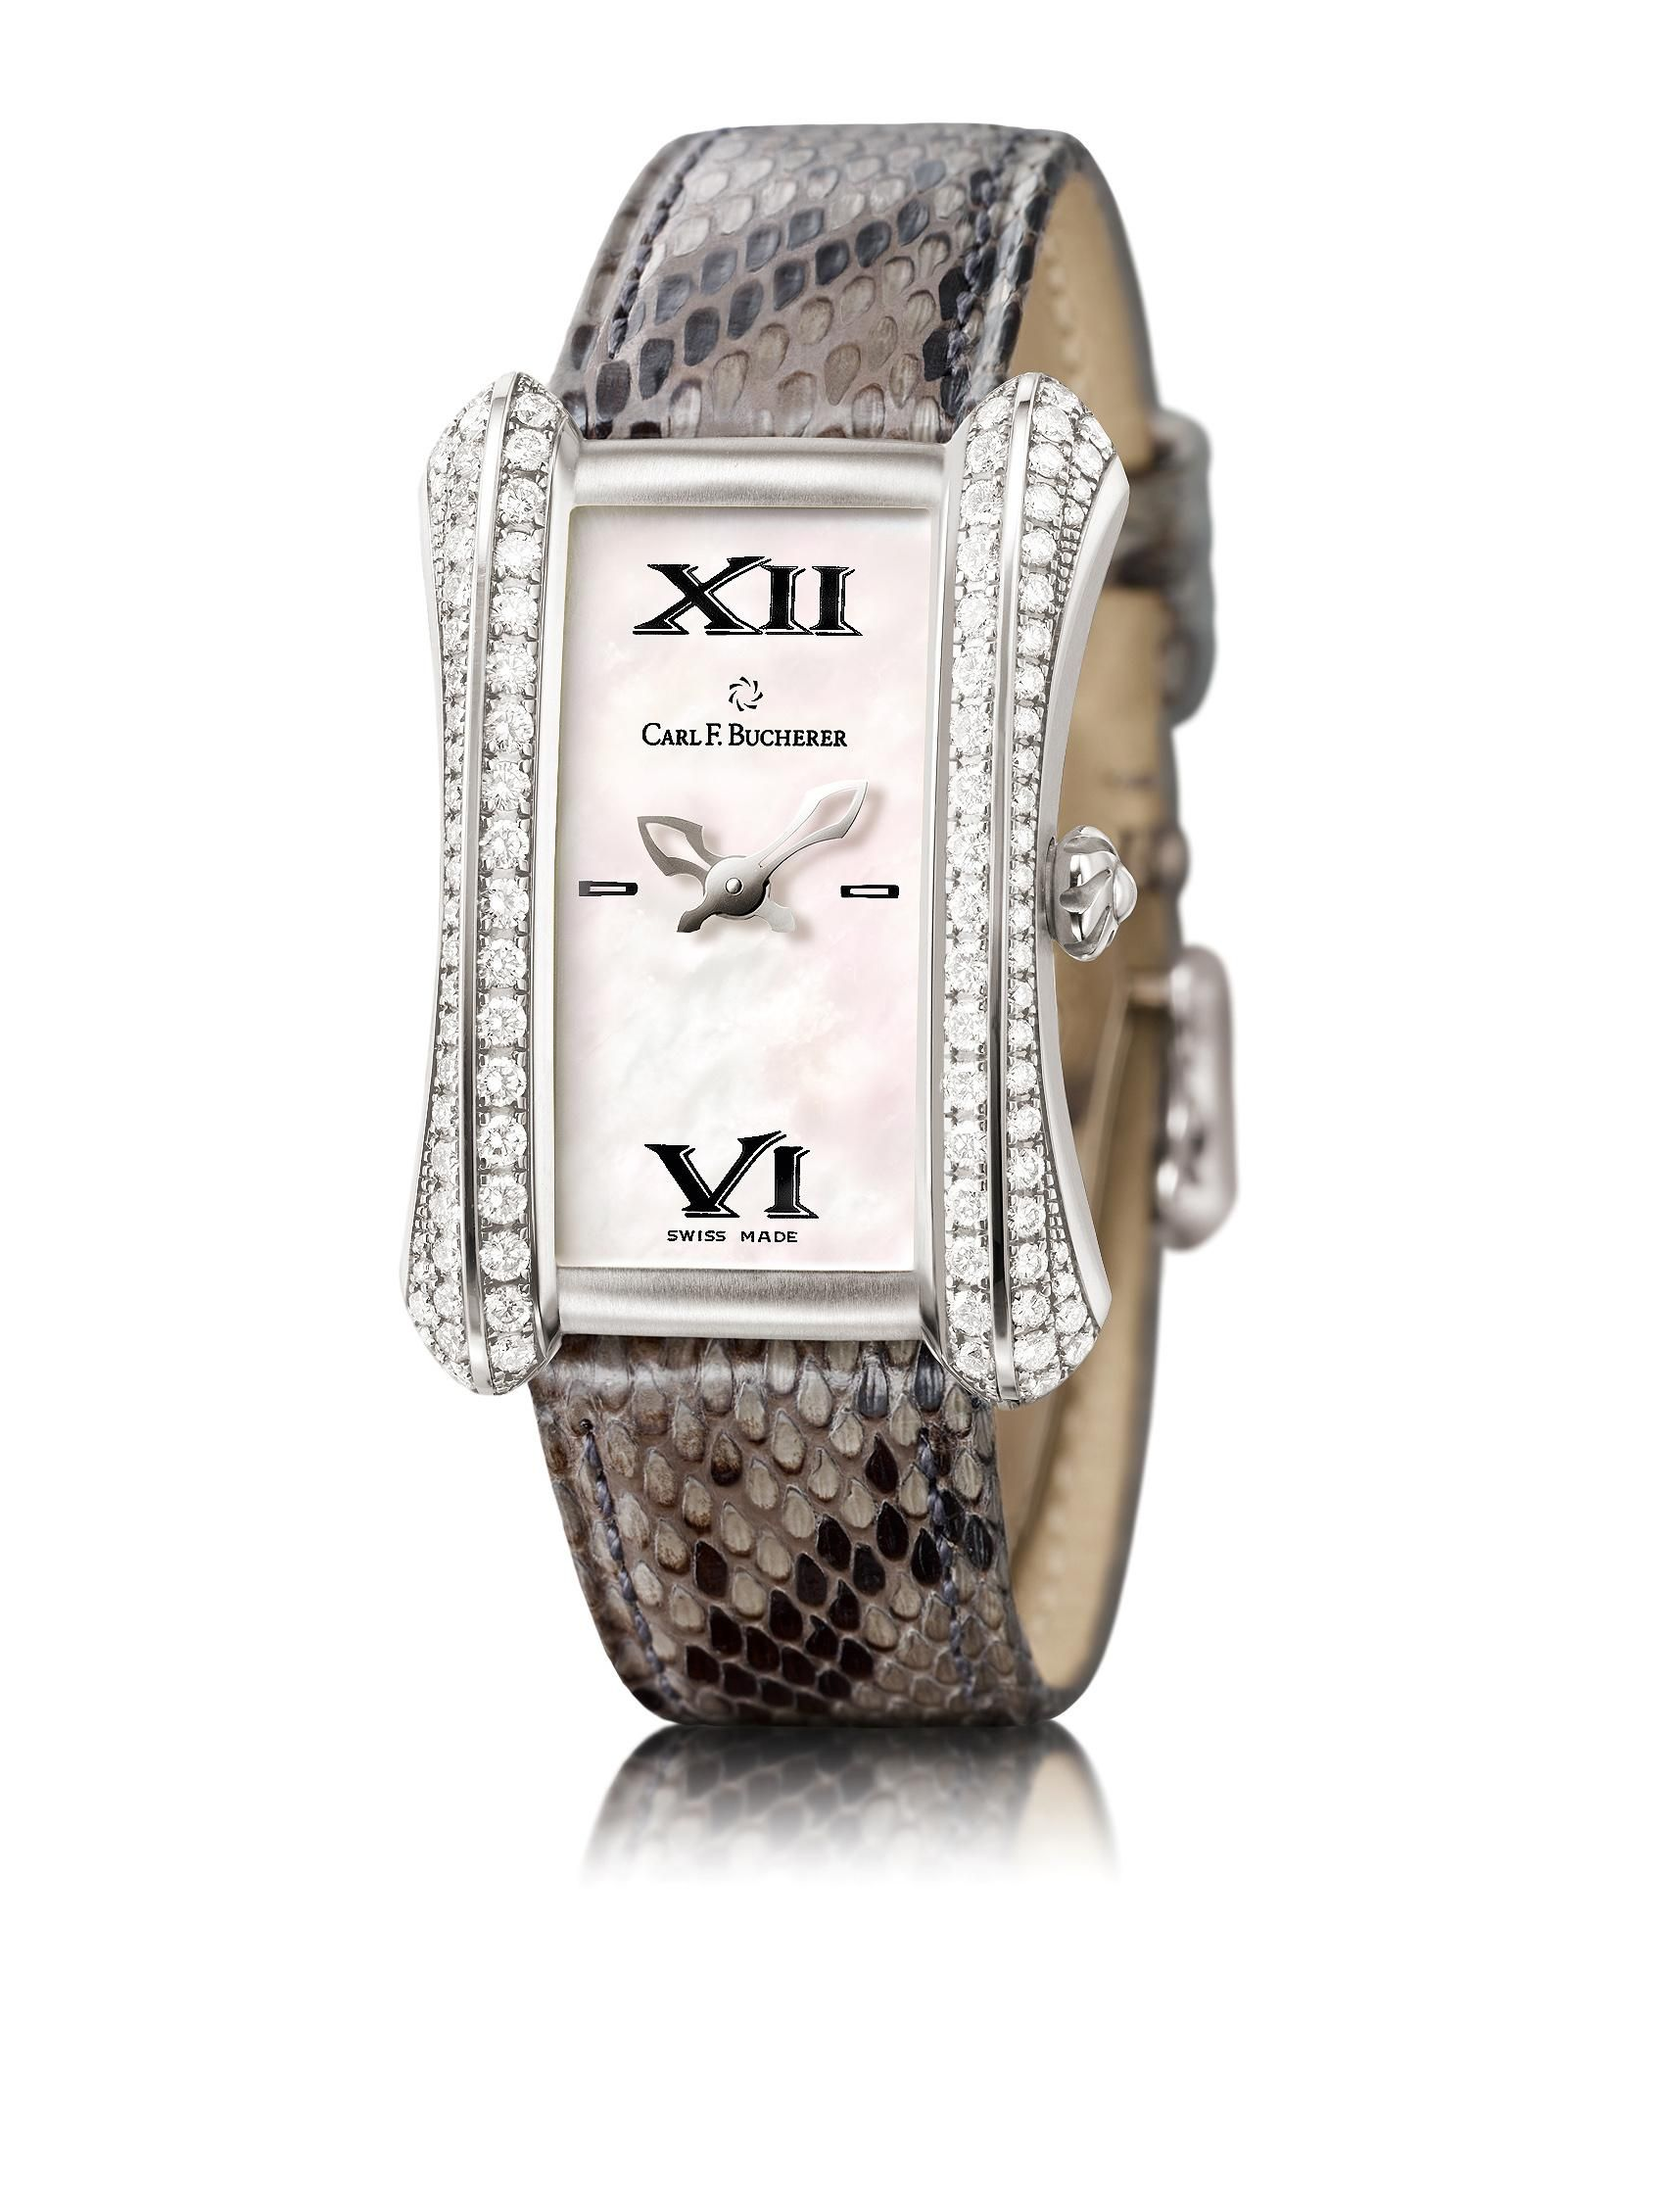 Carl F. Bucherer 18k White Gold Diamond Alacria with a Python Leather Strap with 18k White Gold Folding Clasp, White Mother of Pearl Dial, and 18k White Gold Diamond Case. 102 VVS Quality Diamonds, Total Diamond Weight is 1.60ct. $21,100.00